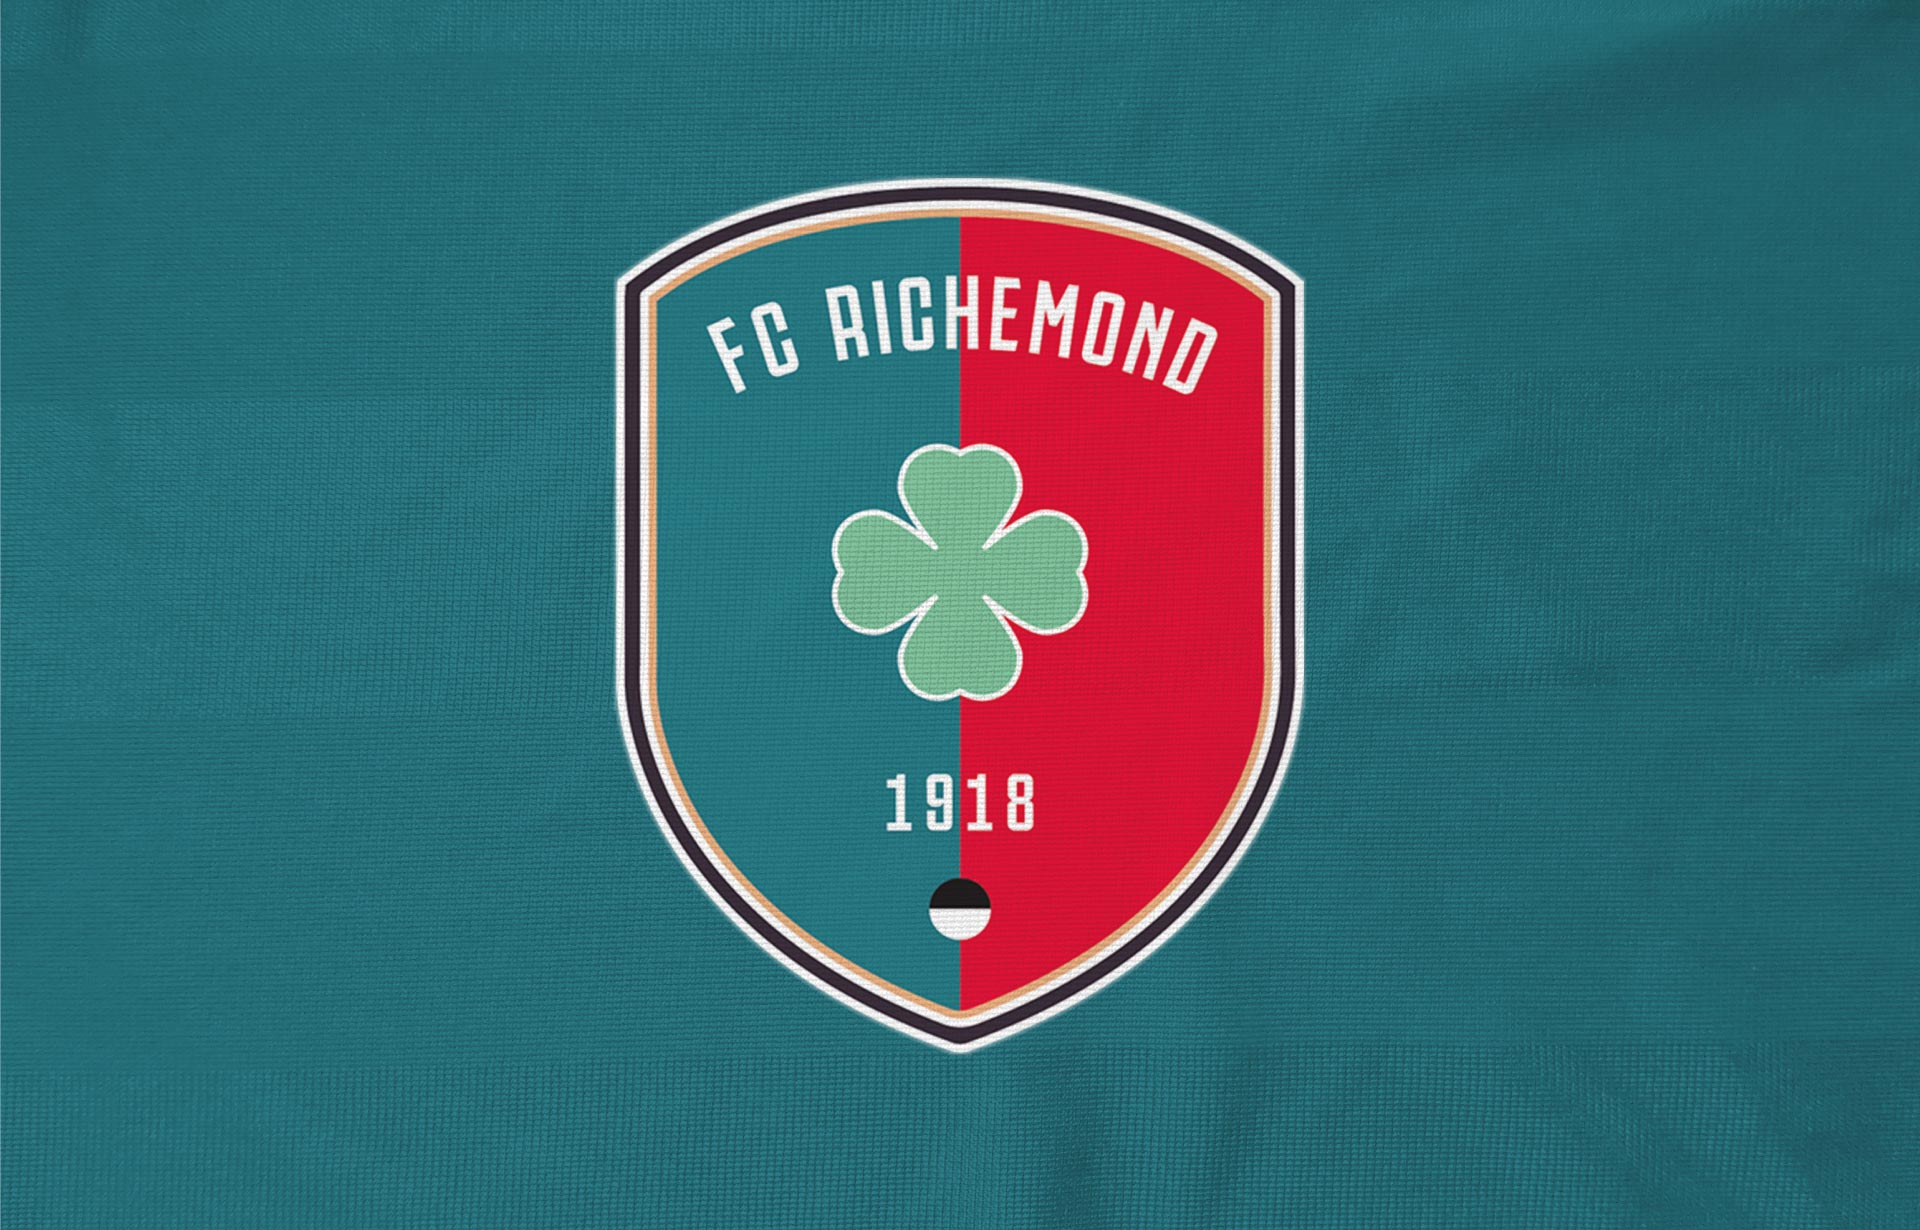 https://www.fcrichemond.ch/wp-content/uploads/2019/06/fcrichemond-home-1.jpg